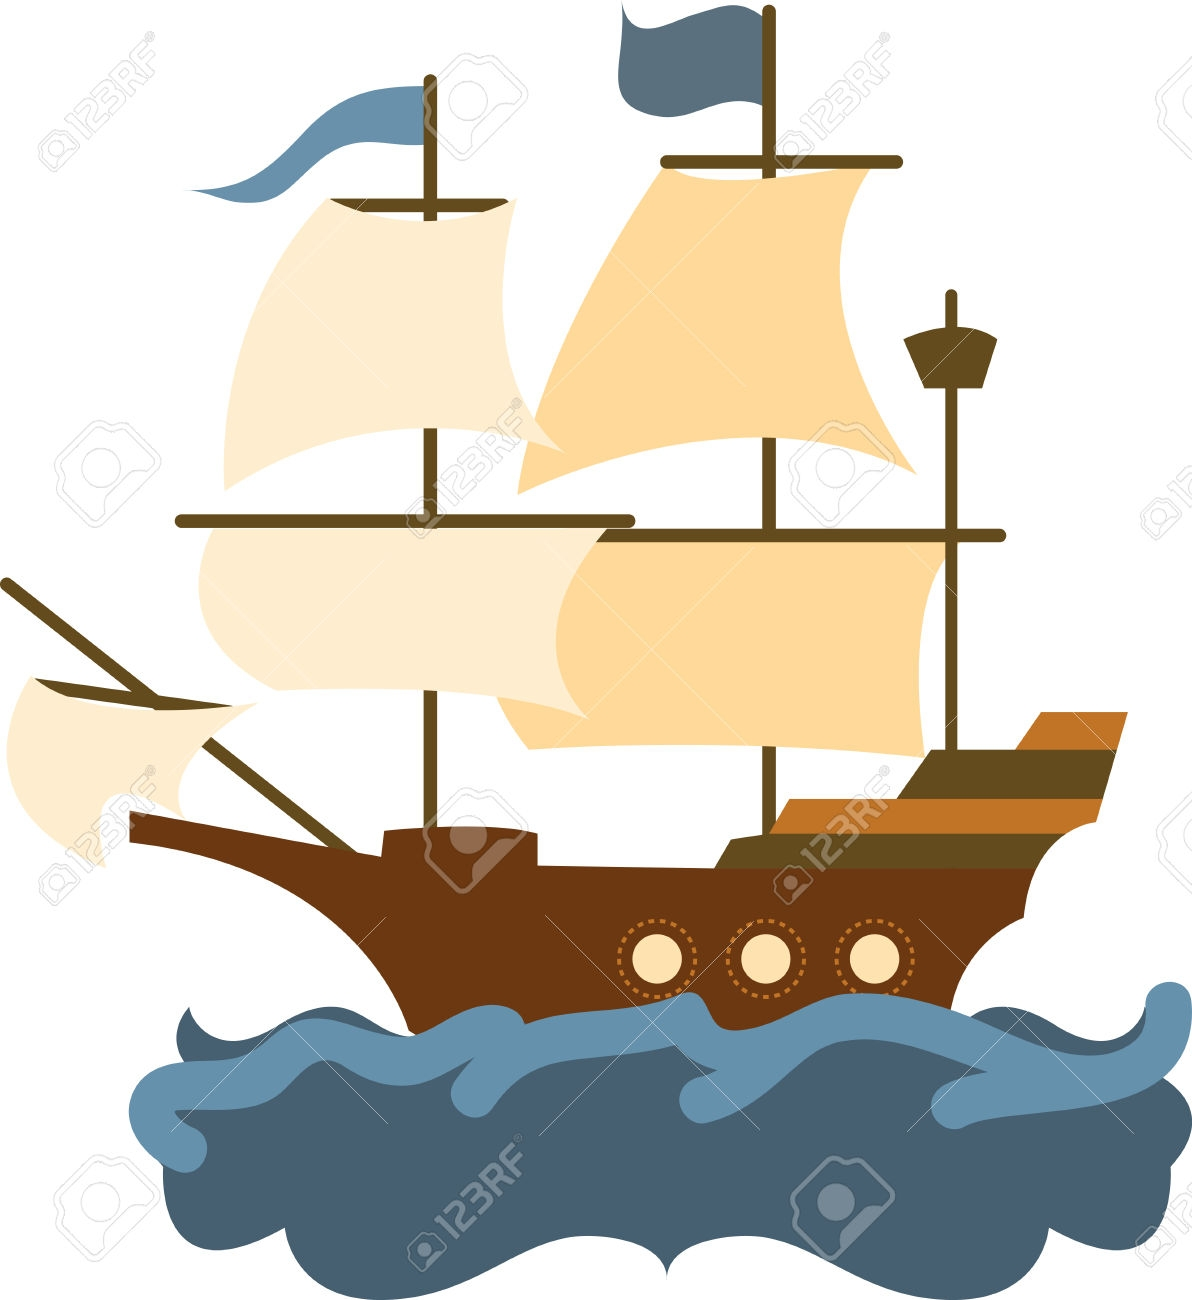 mayflower ship clipart at getdrawings com free for personal use rh getdrawings com mayflower boat clipart mayflower flower clipart